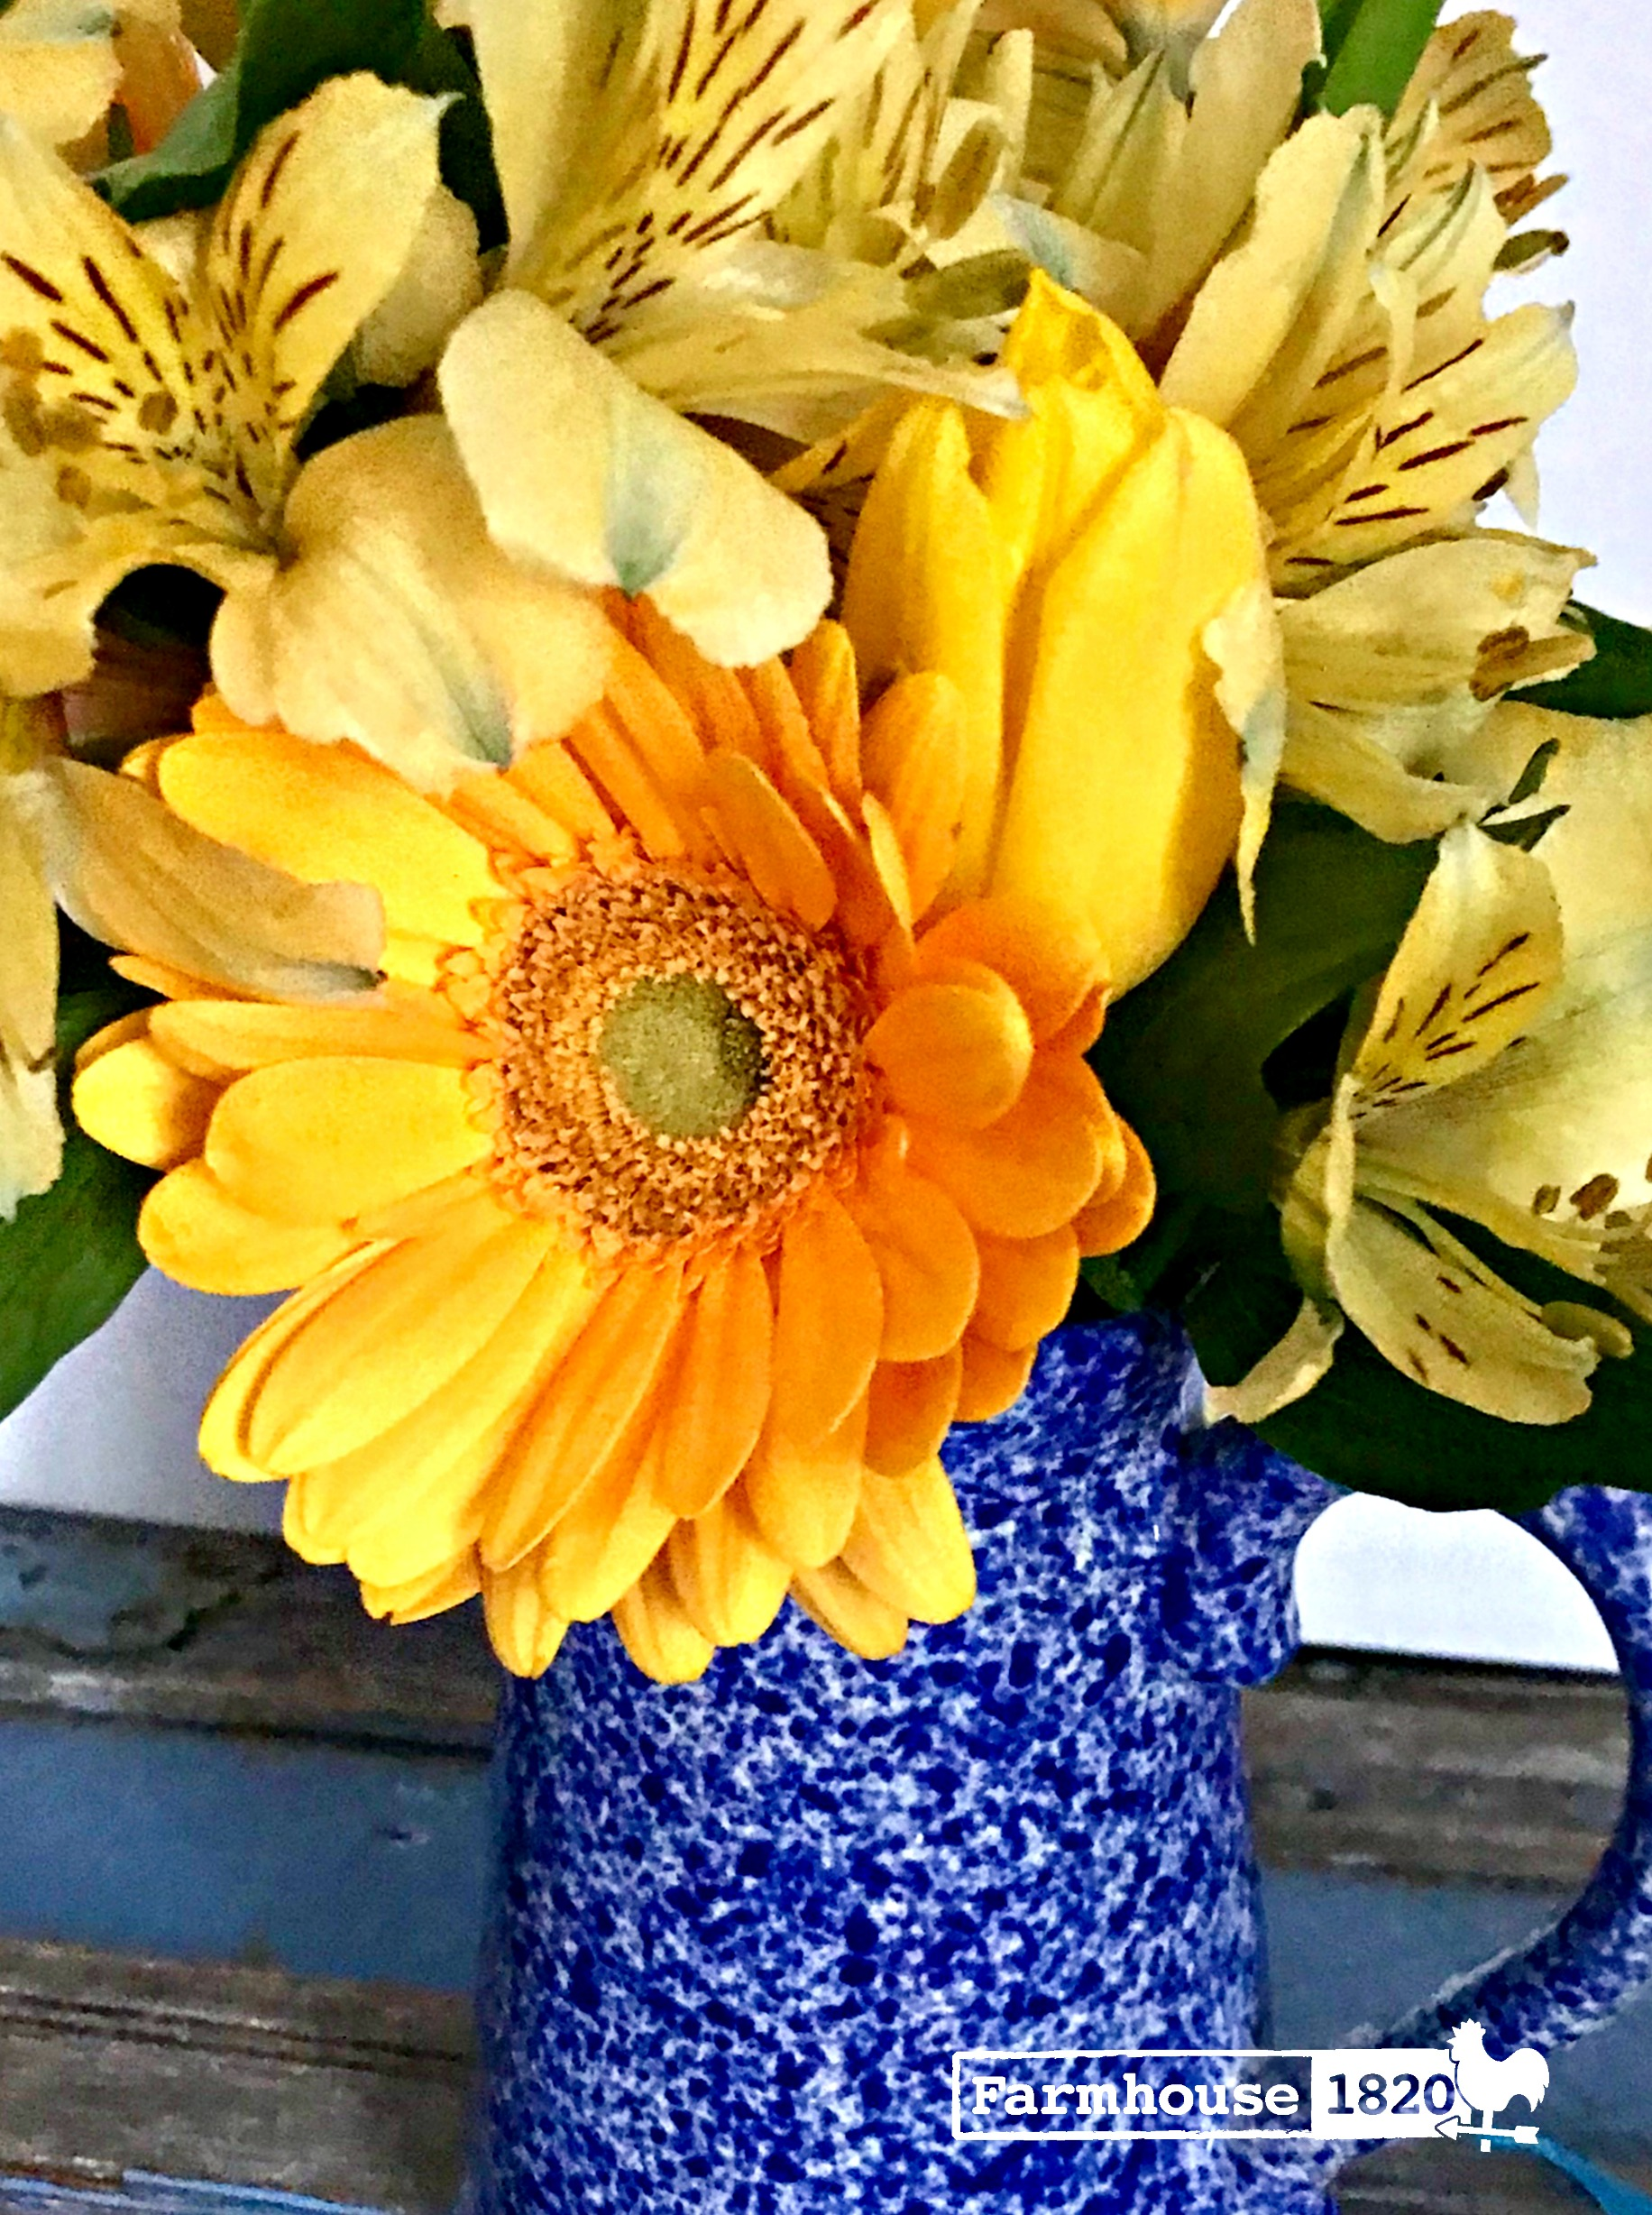 winter blues - sunny flowers bring smiles to our faces